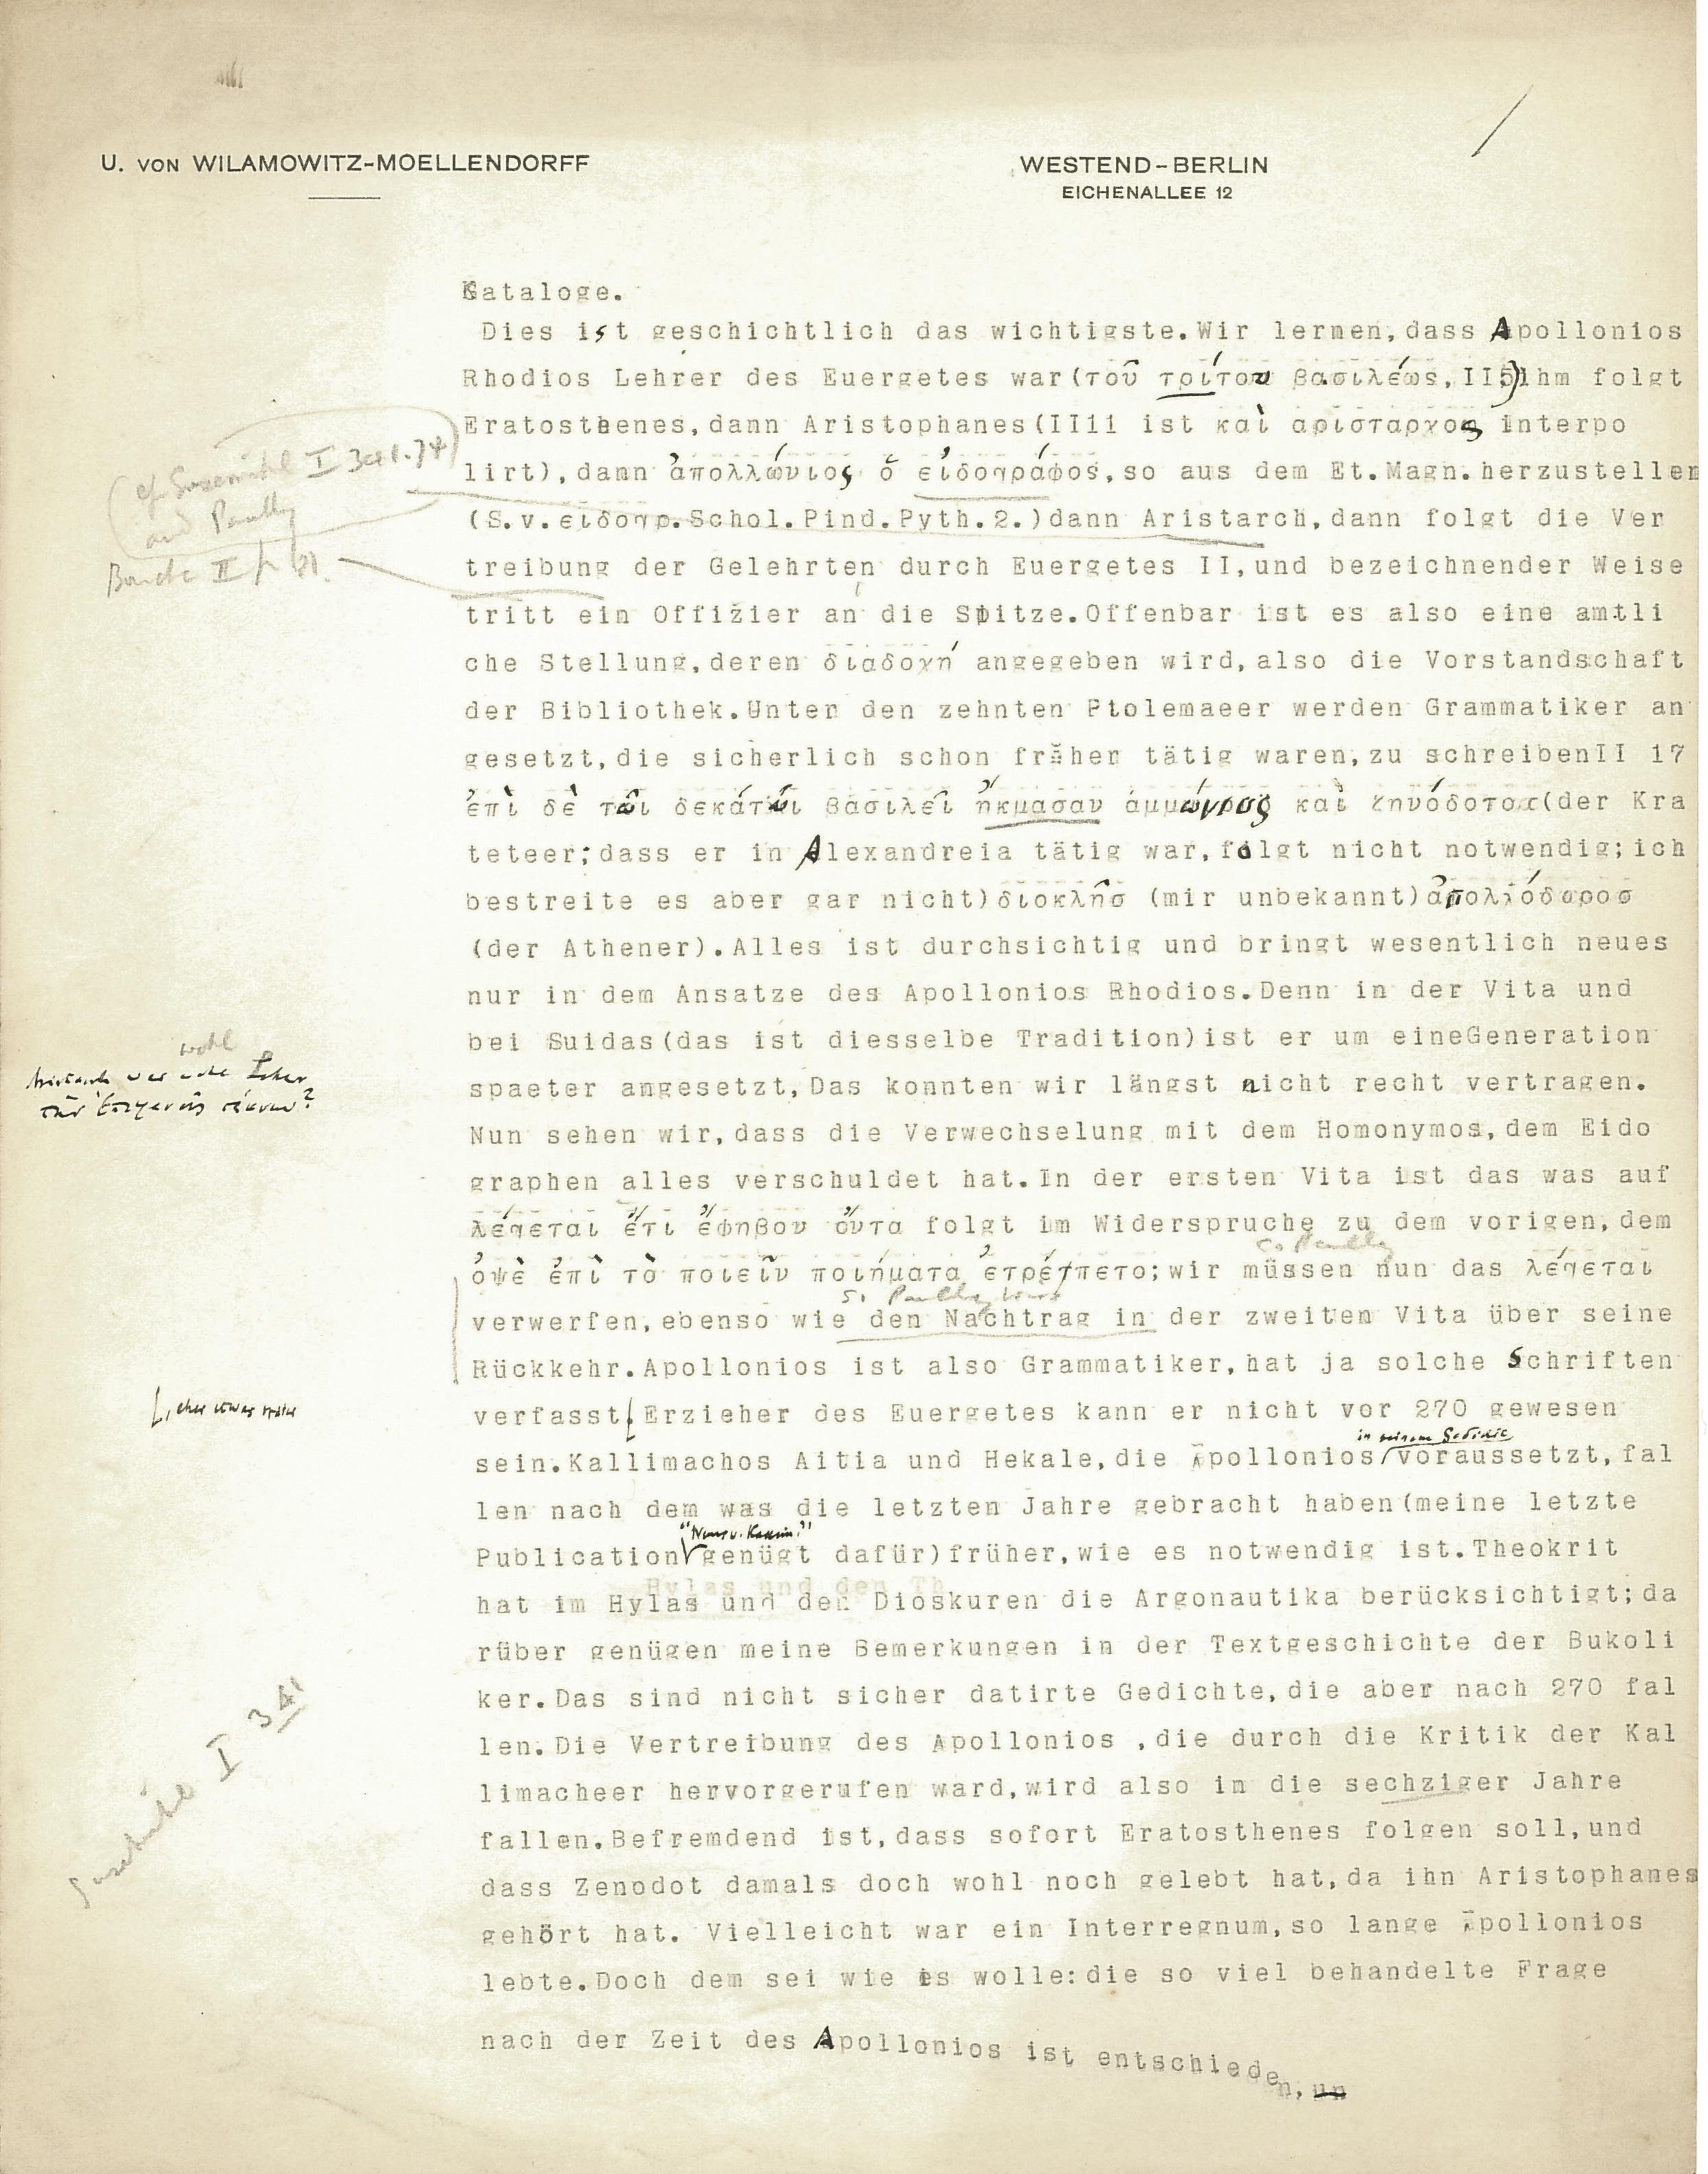 1908-09 A.S. Hunt, letters re papyri from continental scholars DIST.30.17b